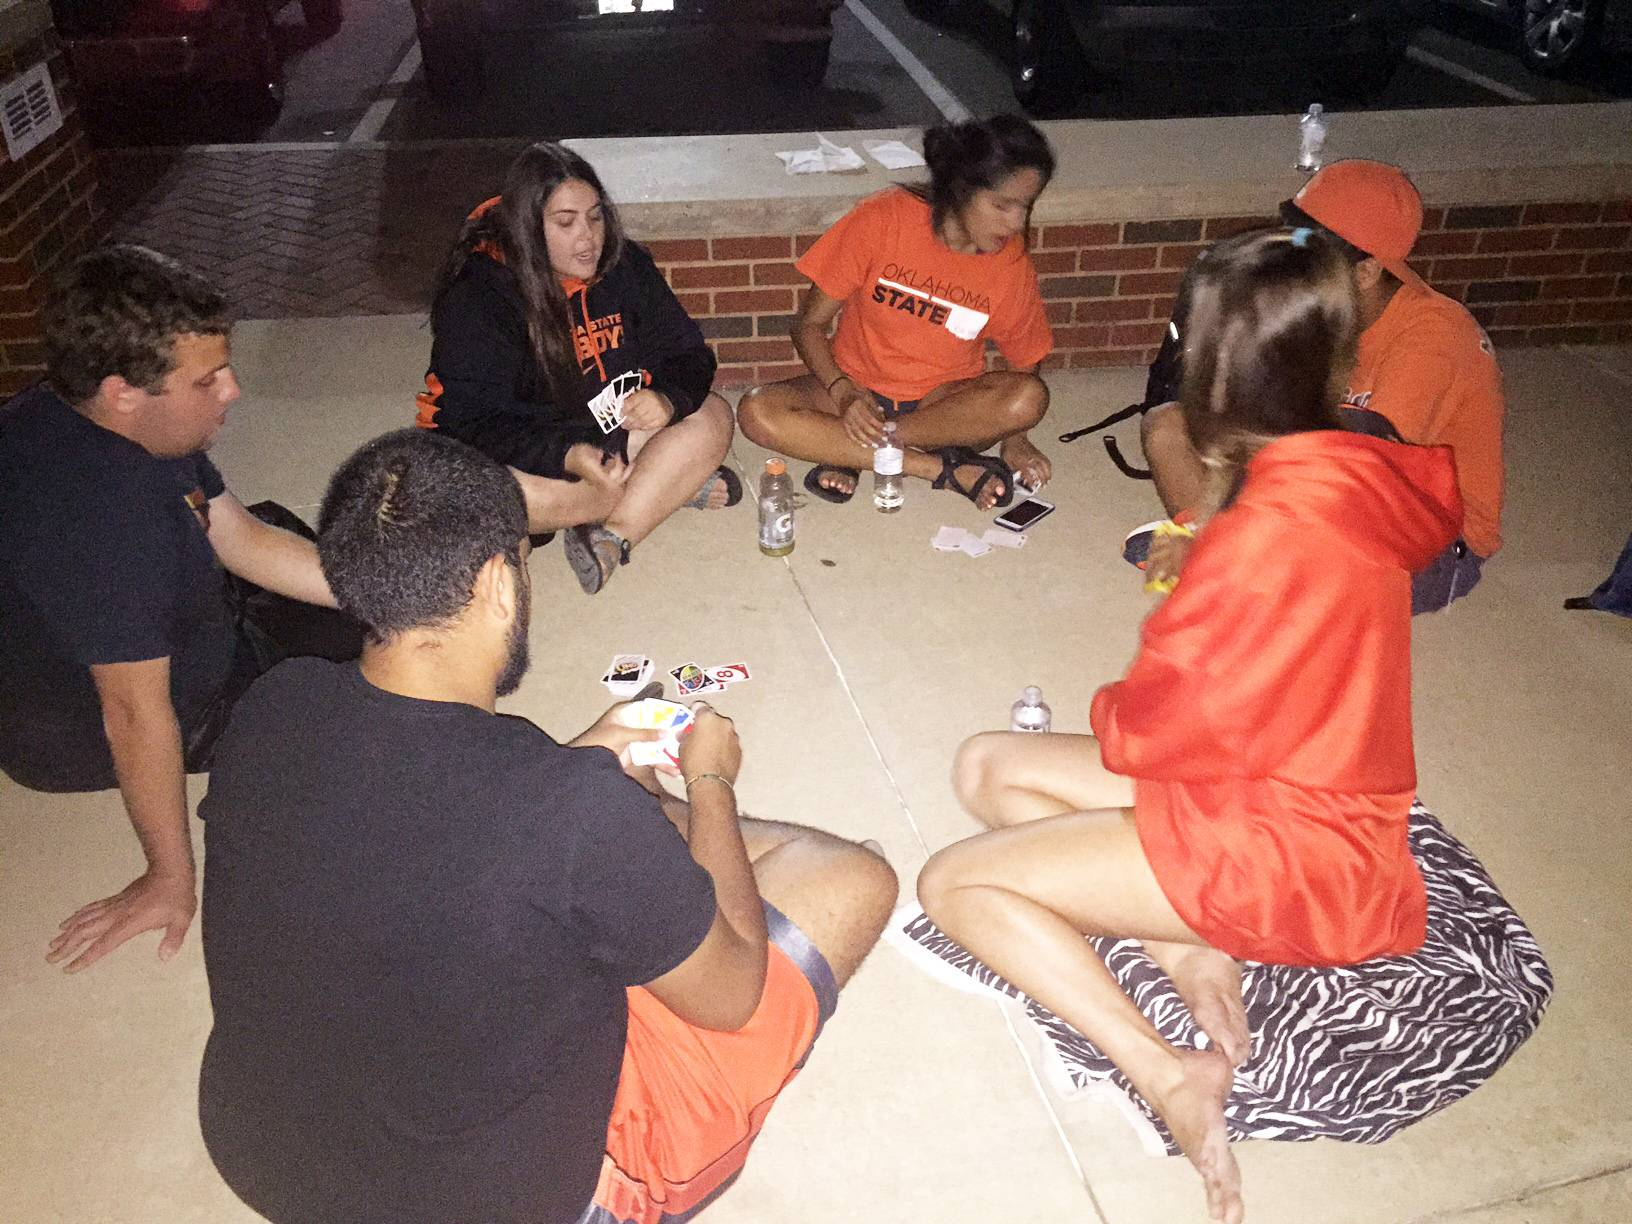 Campers play Uno at a Rowdy campout.